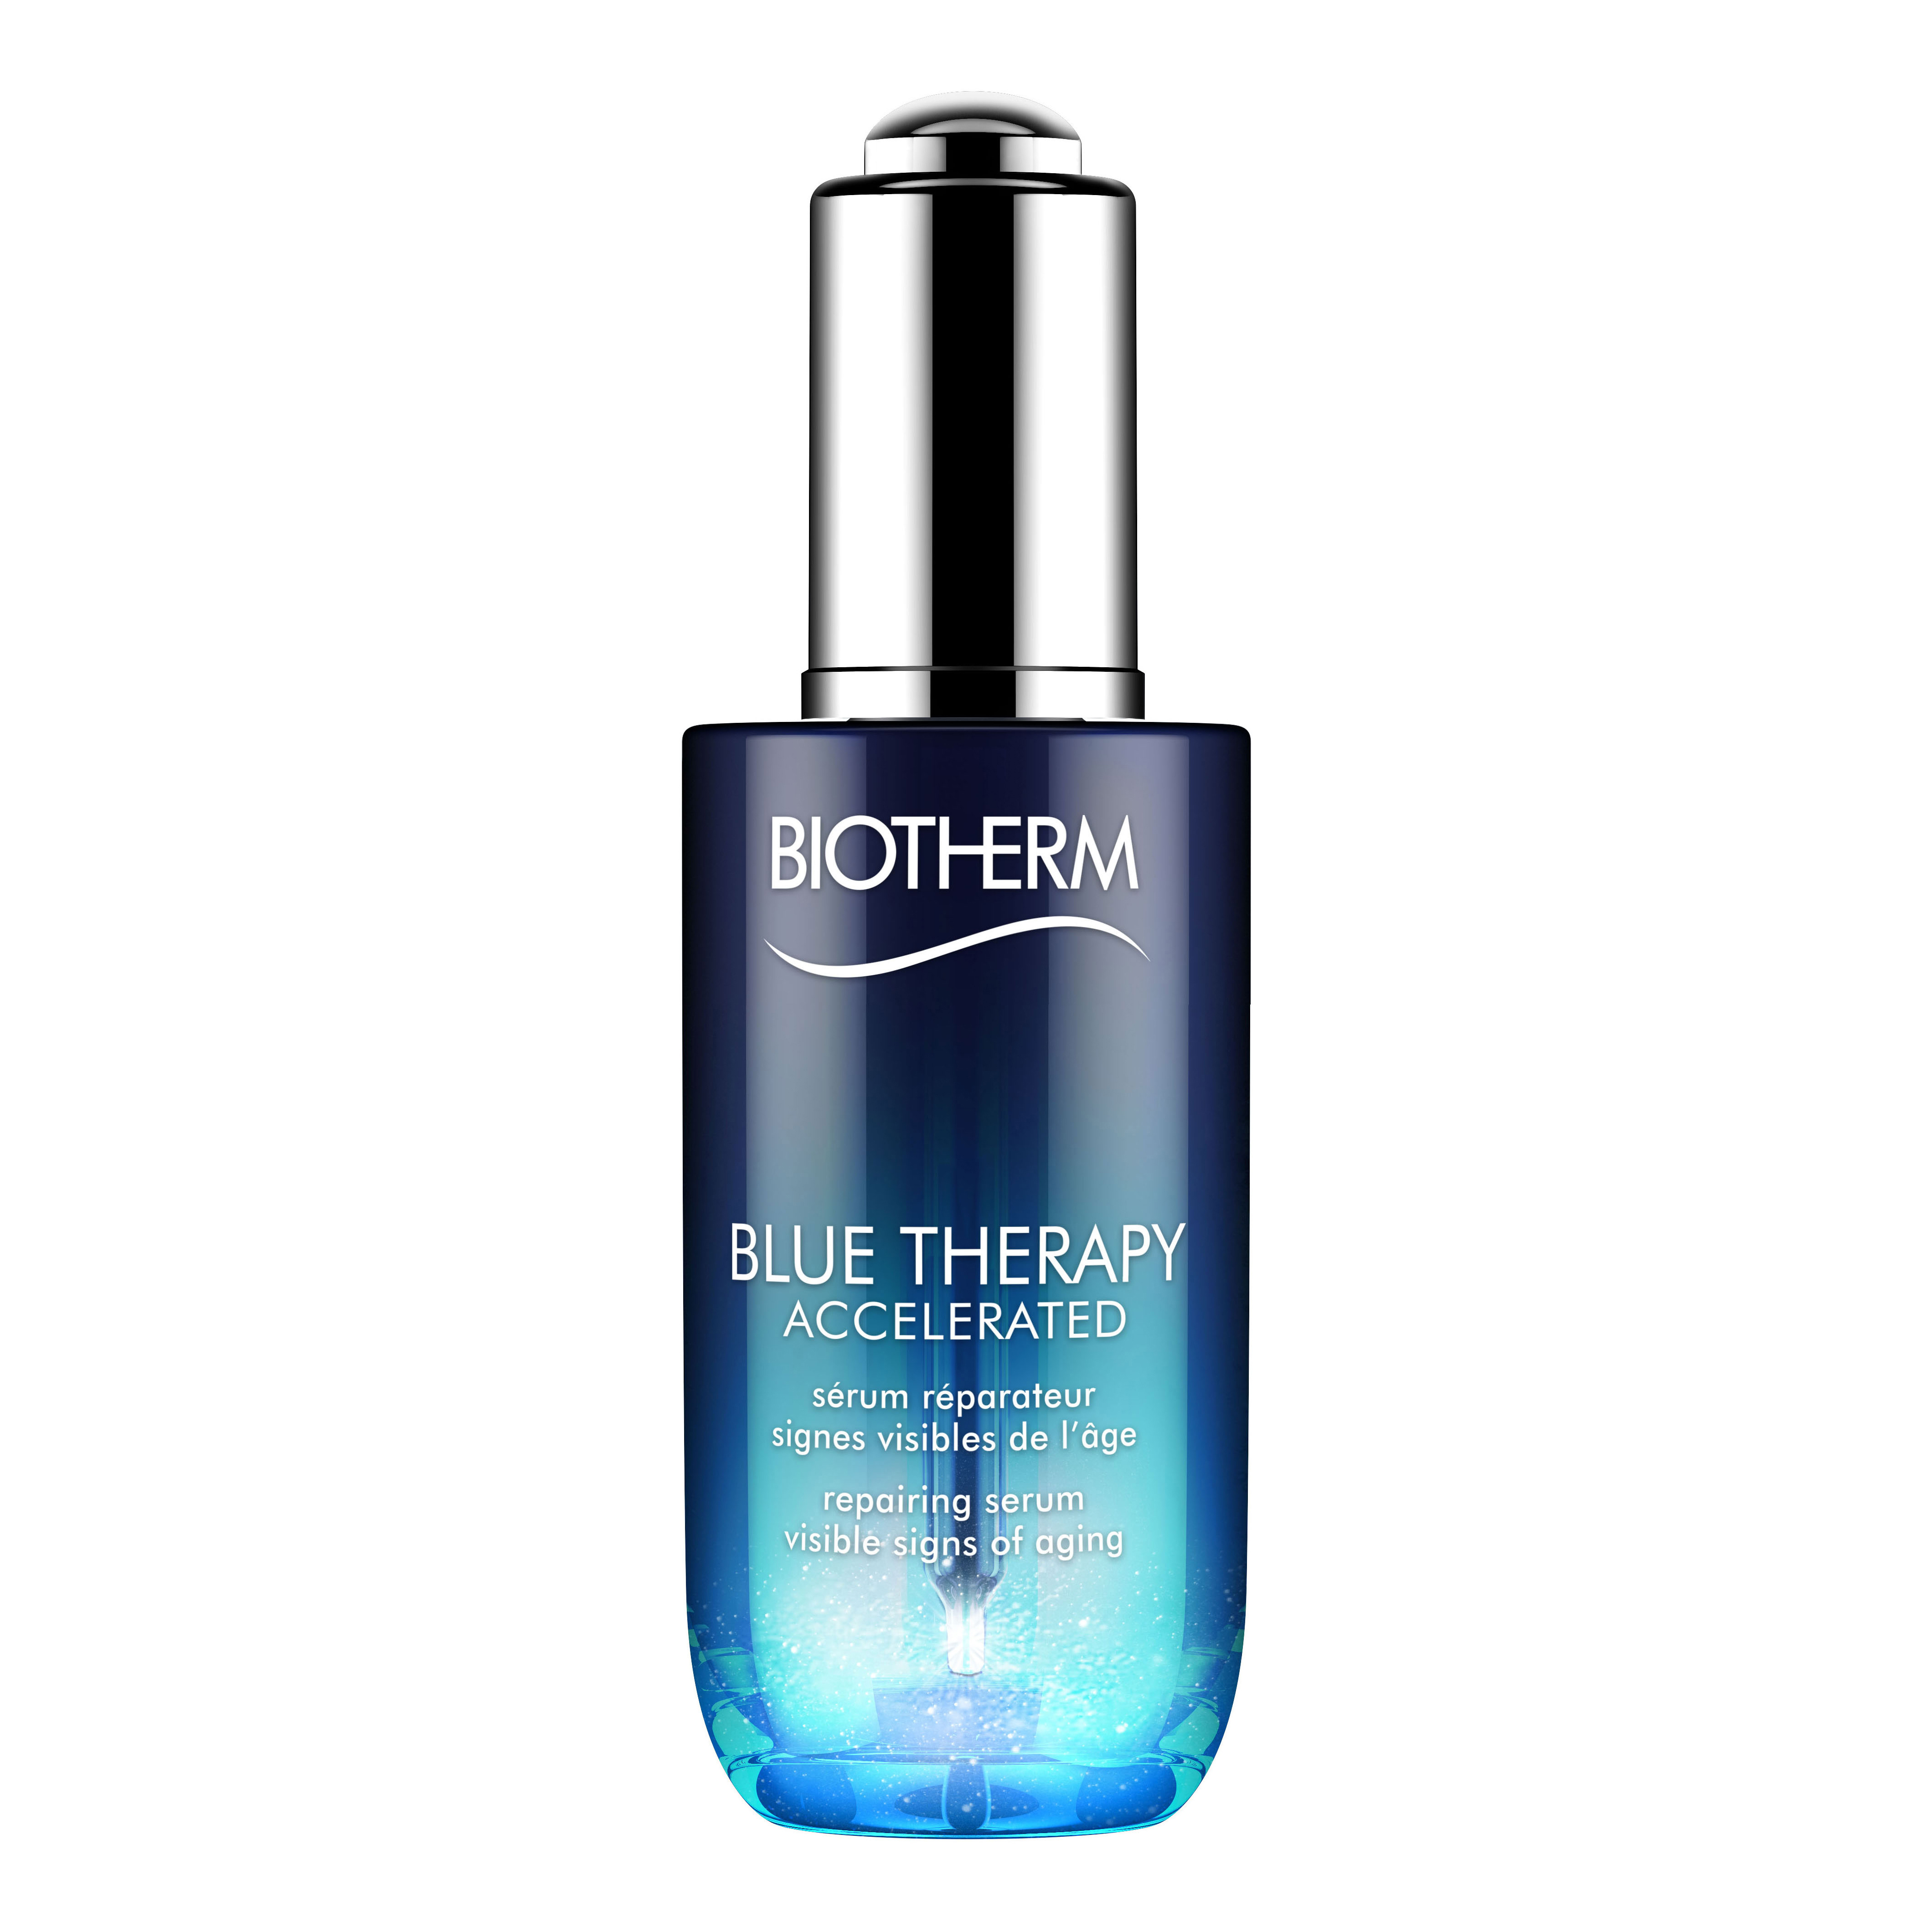 Blue Therapy Accelerated. BIOTHERM Sérum antiedad Accelerated 50ml